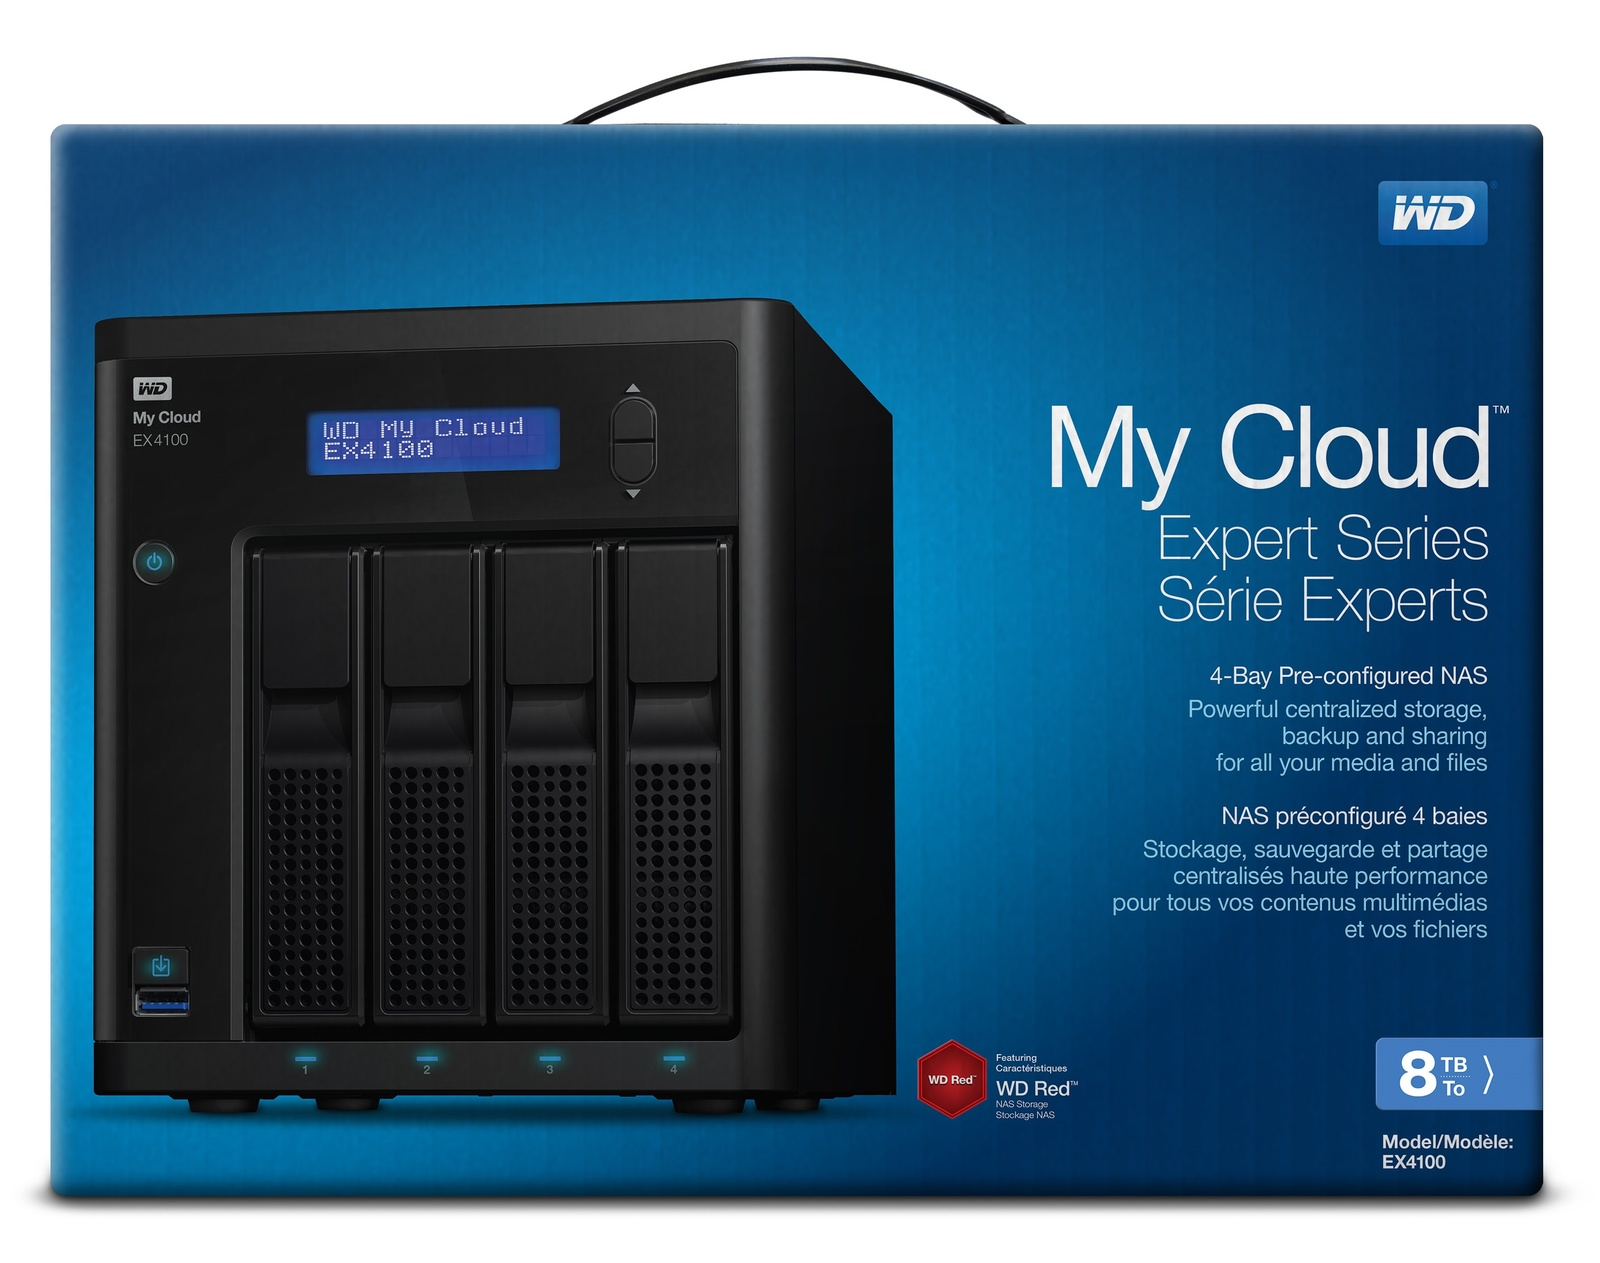 8TB WD My Cloud EX4100 - Expert Series NAS image